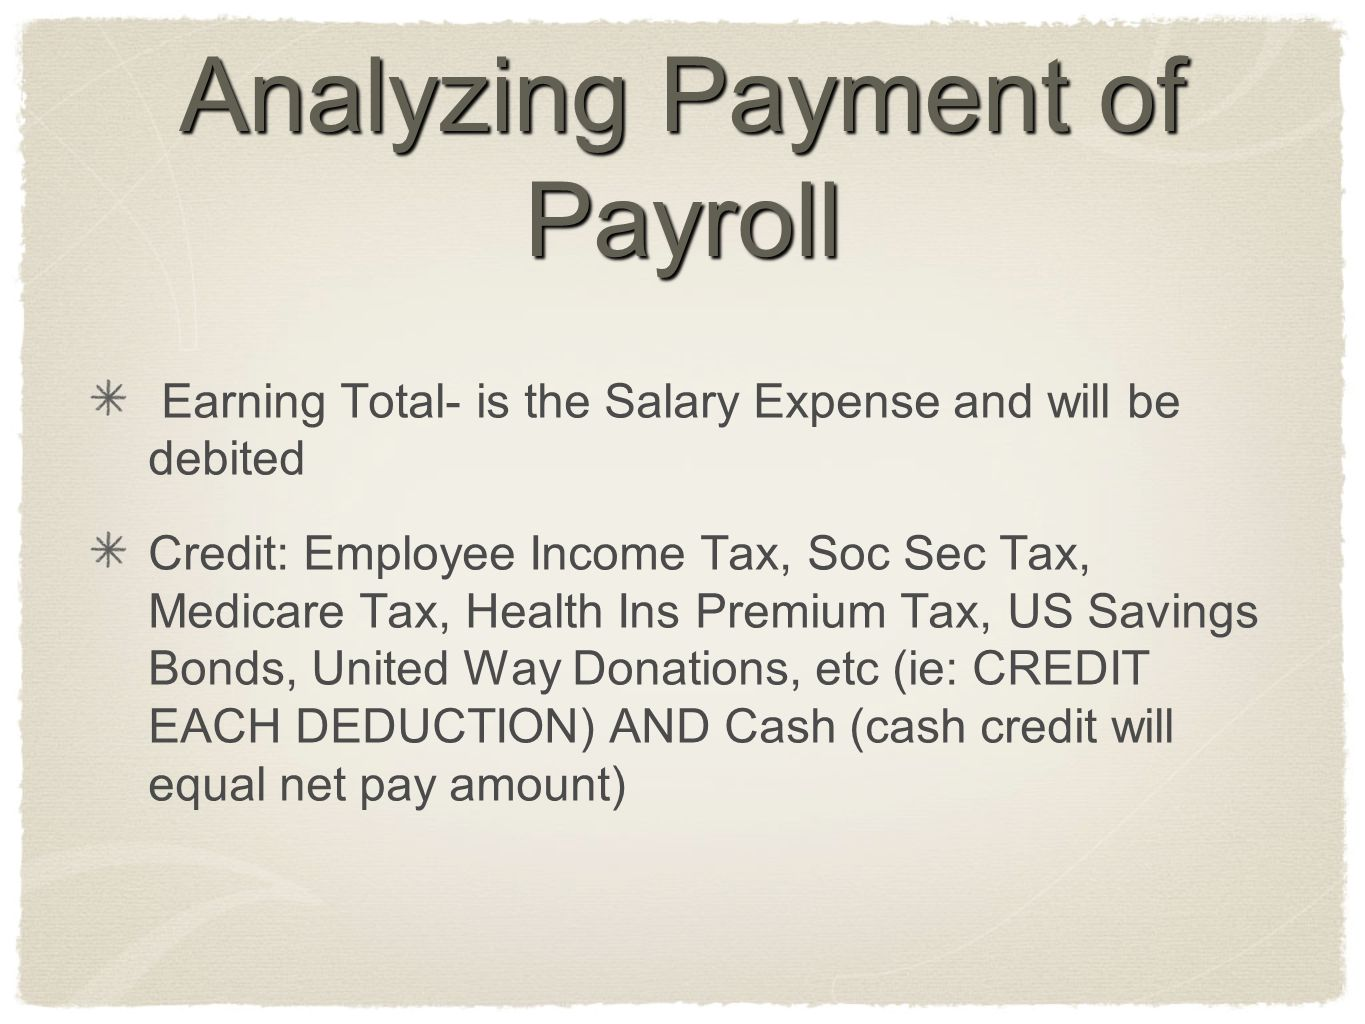 Analyzing Payment of Payroll